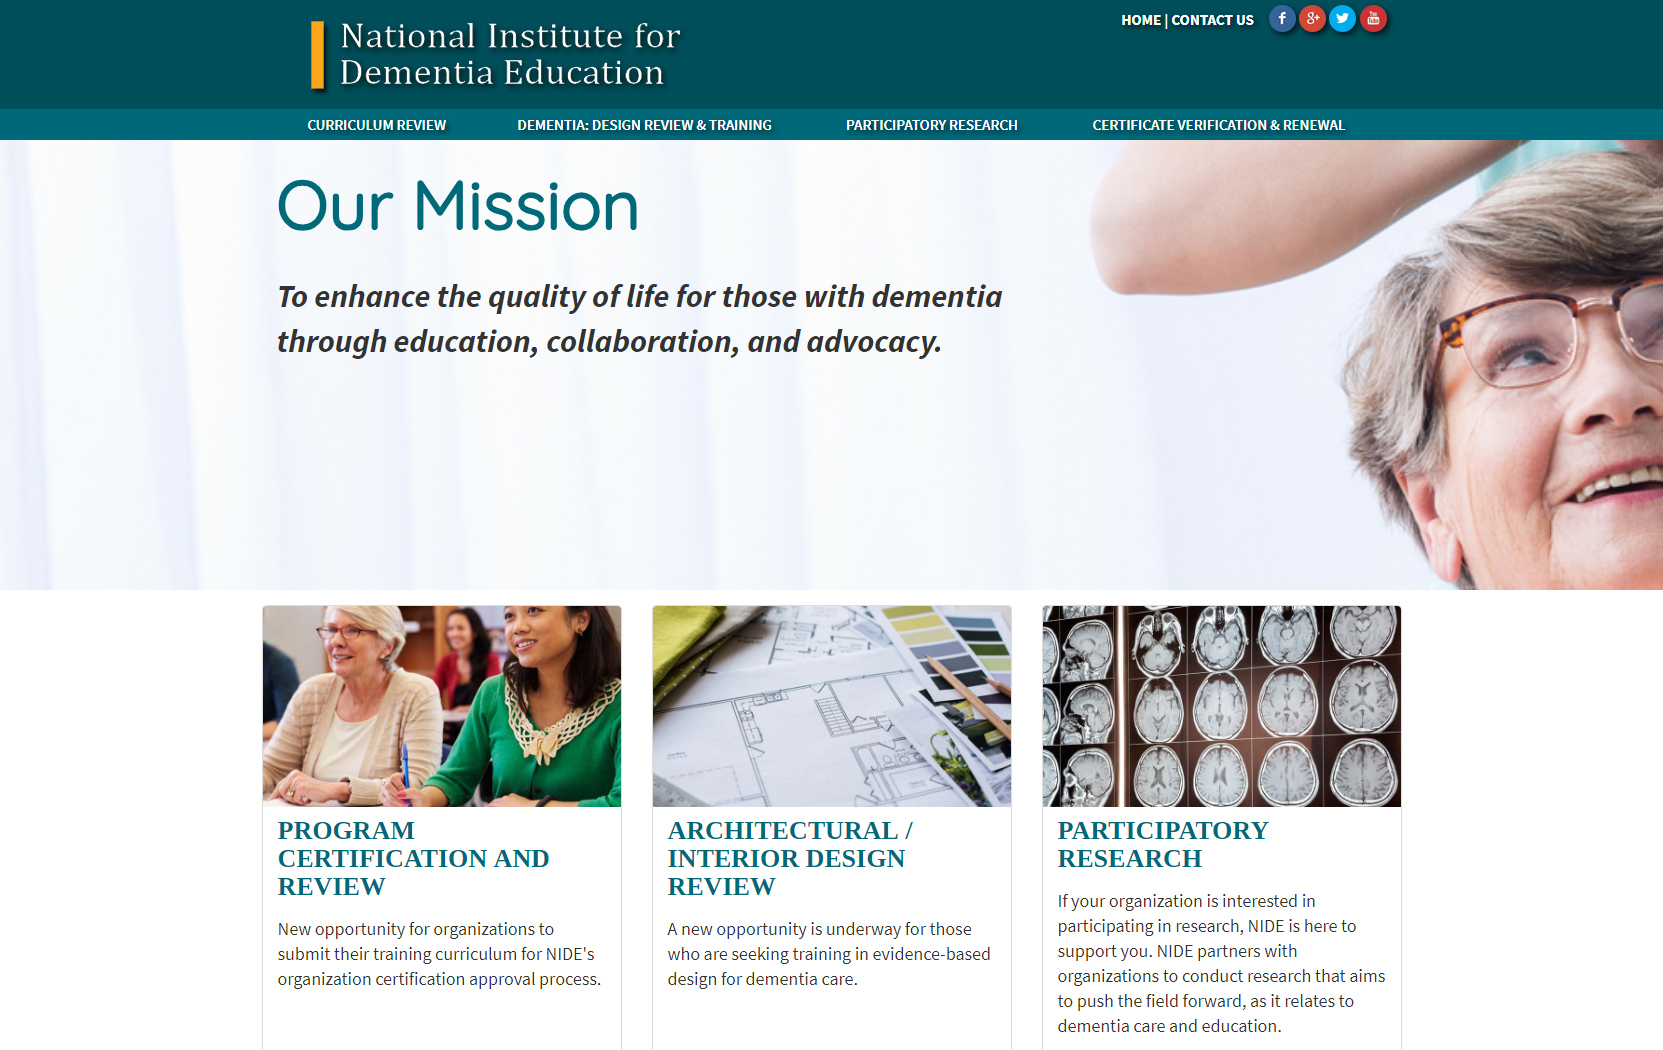 National Institute for Dementia Education